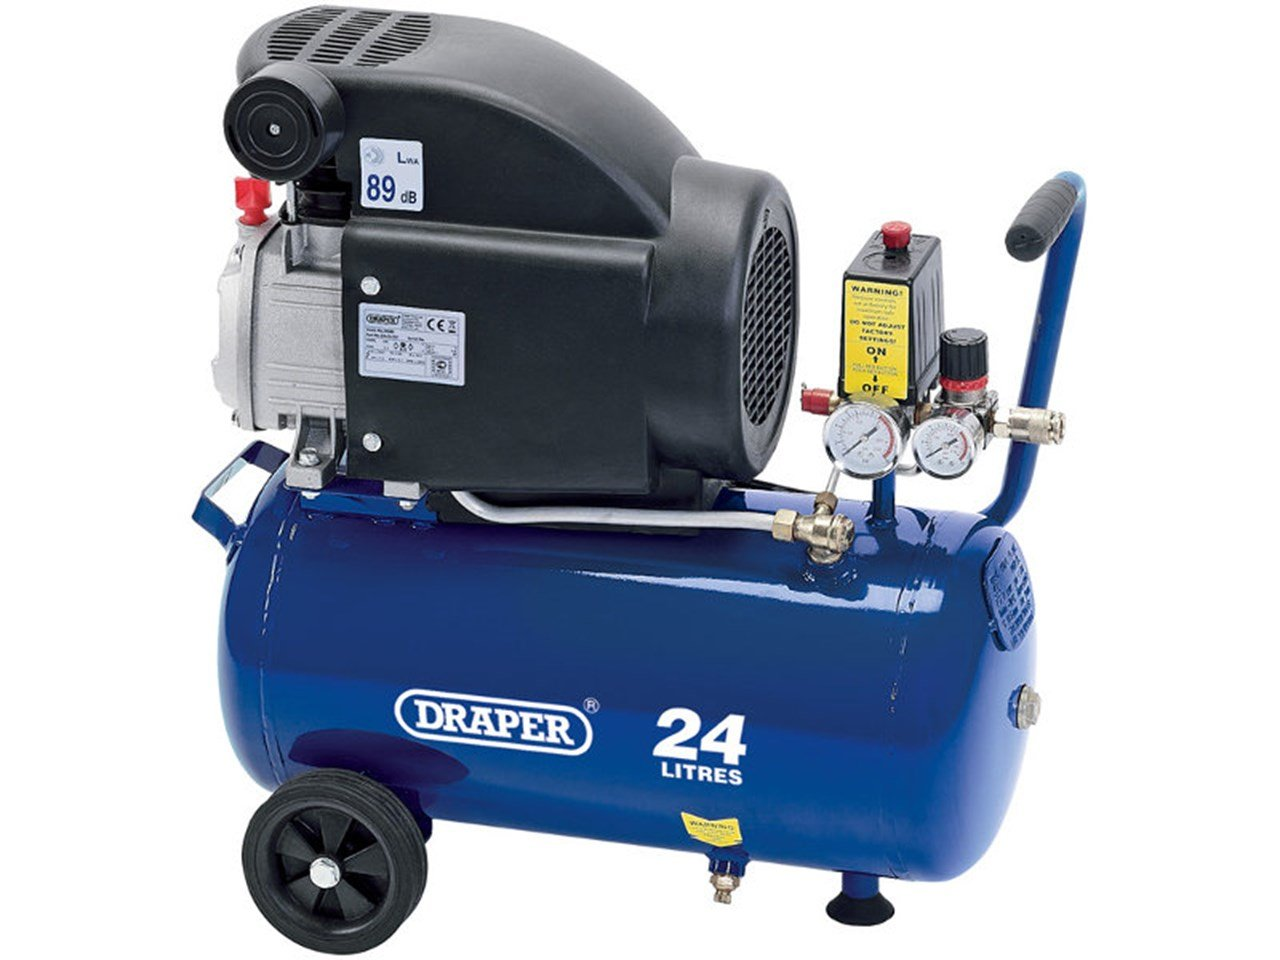 Draper DA25/207 24L 230V 2.0HP Air Compressor, 230 V, Blue, 24 L Draper Tools Limited